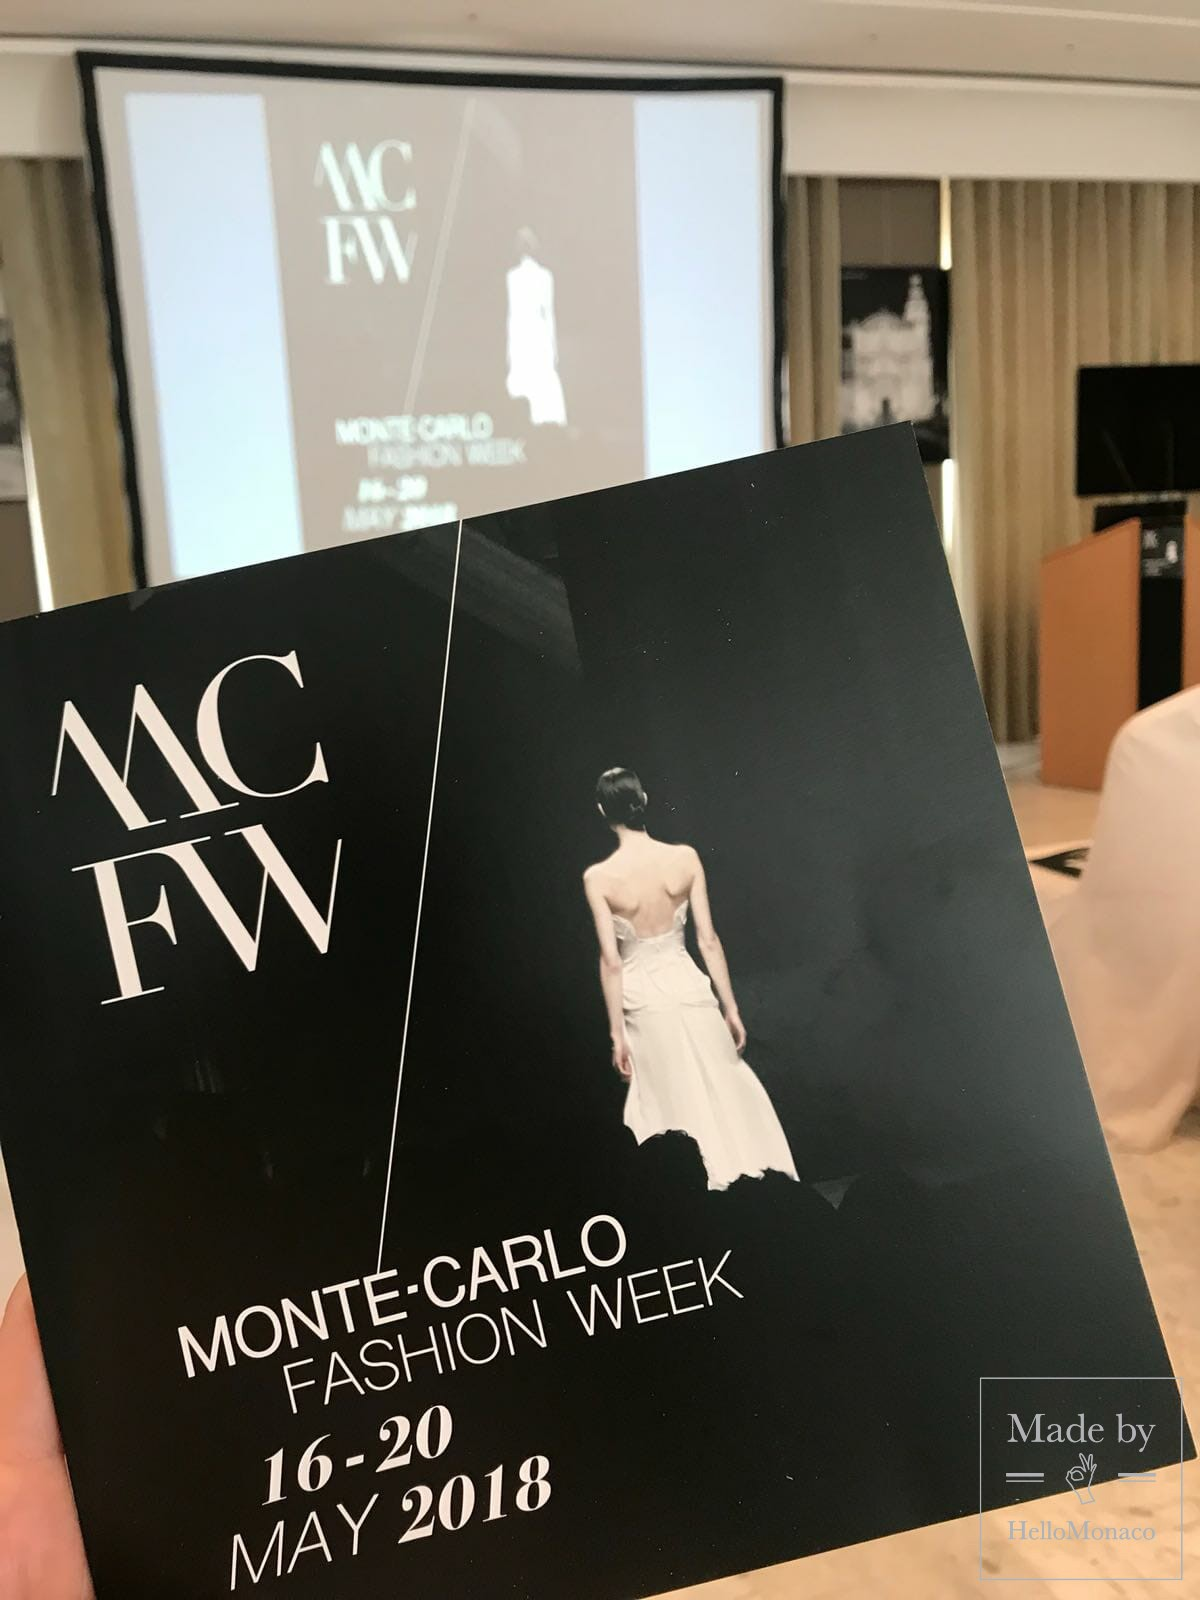 Monte Carlo Fashion Week 2018